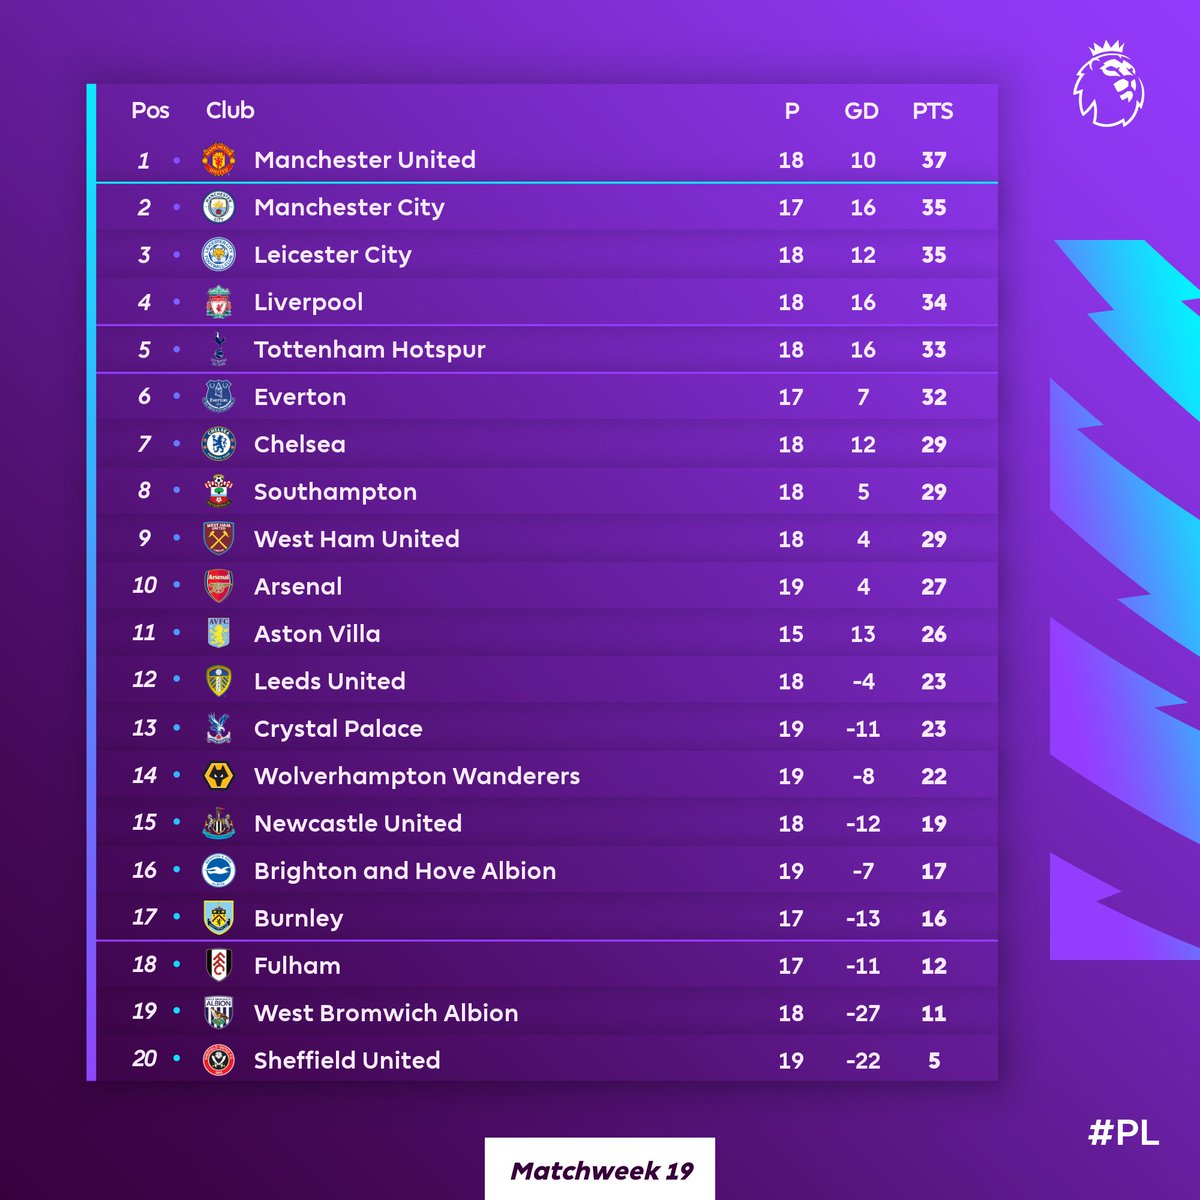 On a scale of 1️⃣-🔟, how do you feel about your club's place in the table? 🤔